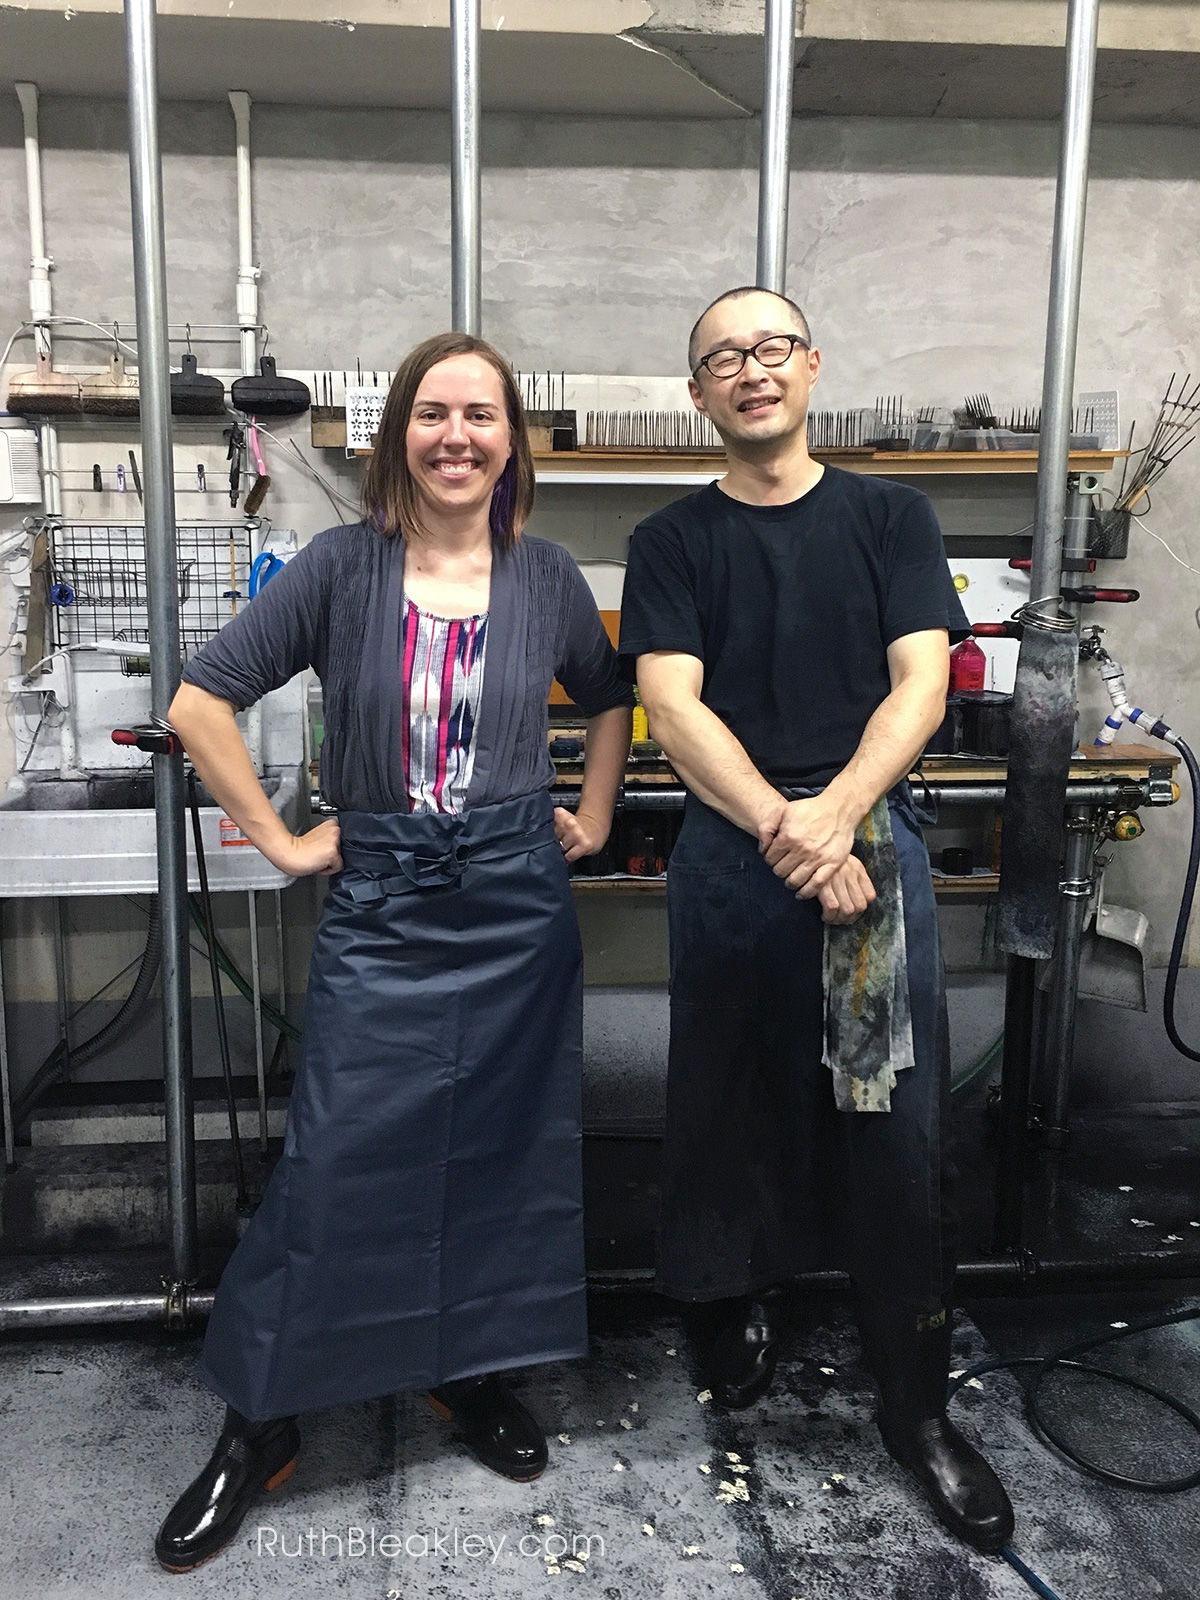 Traveling to Japan to learn suminagashi marbling